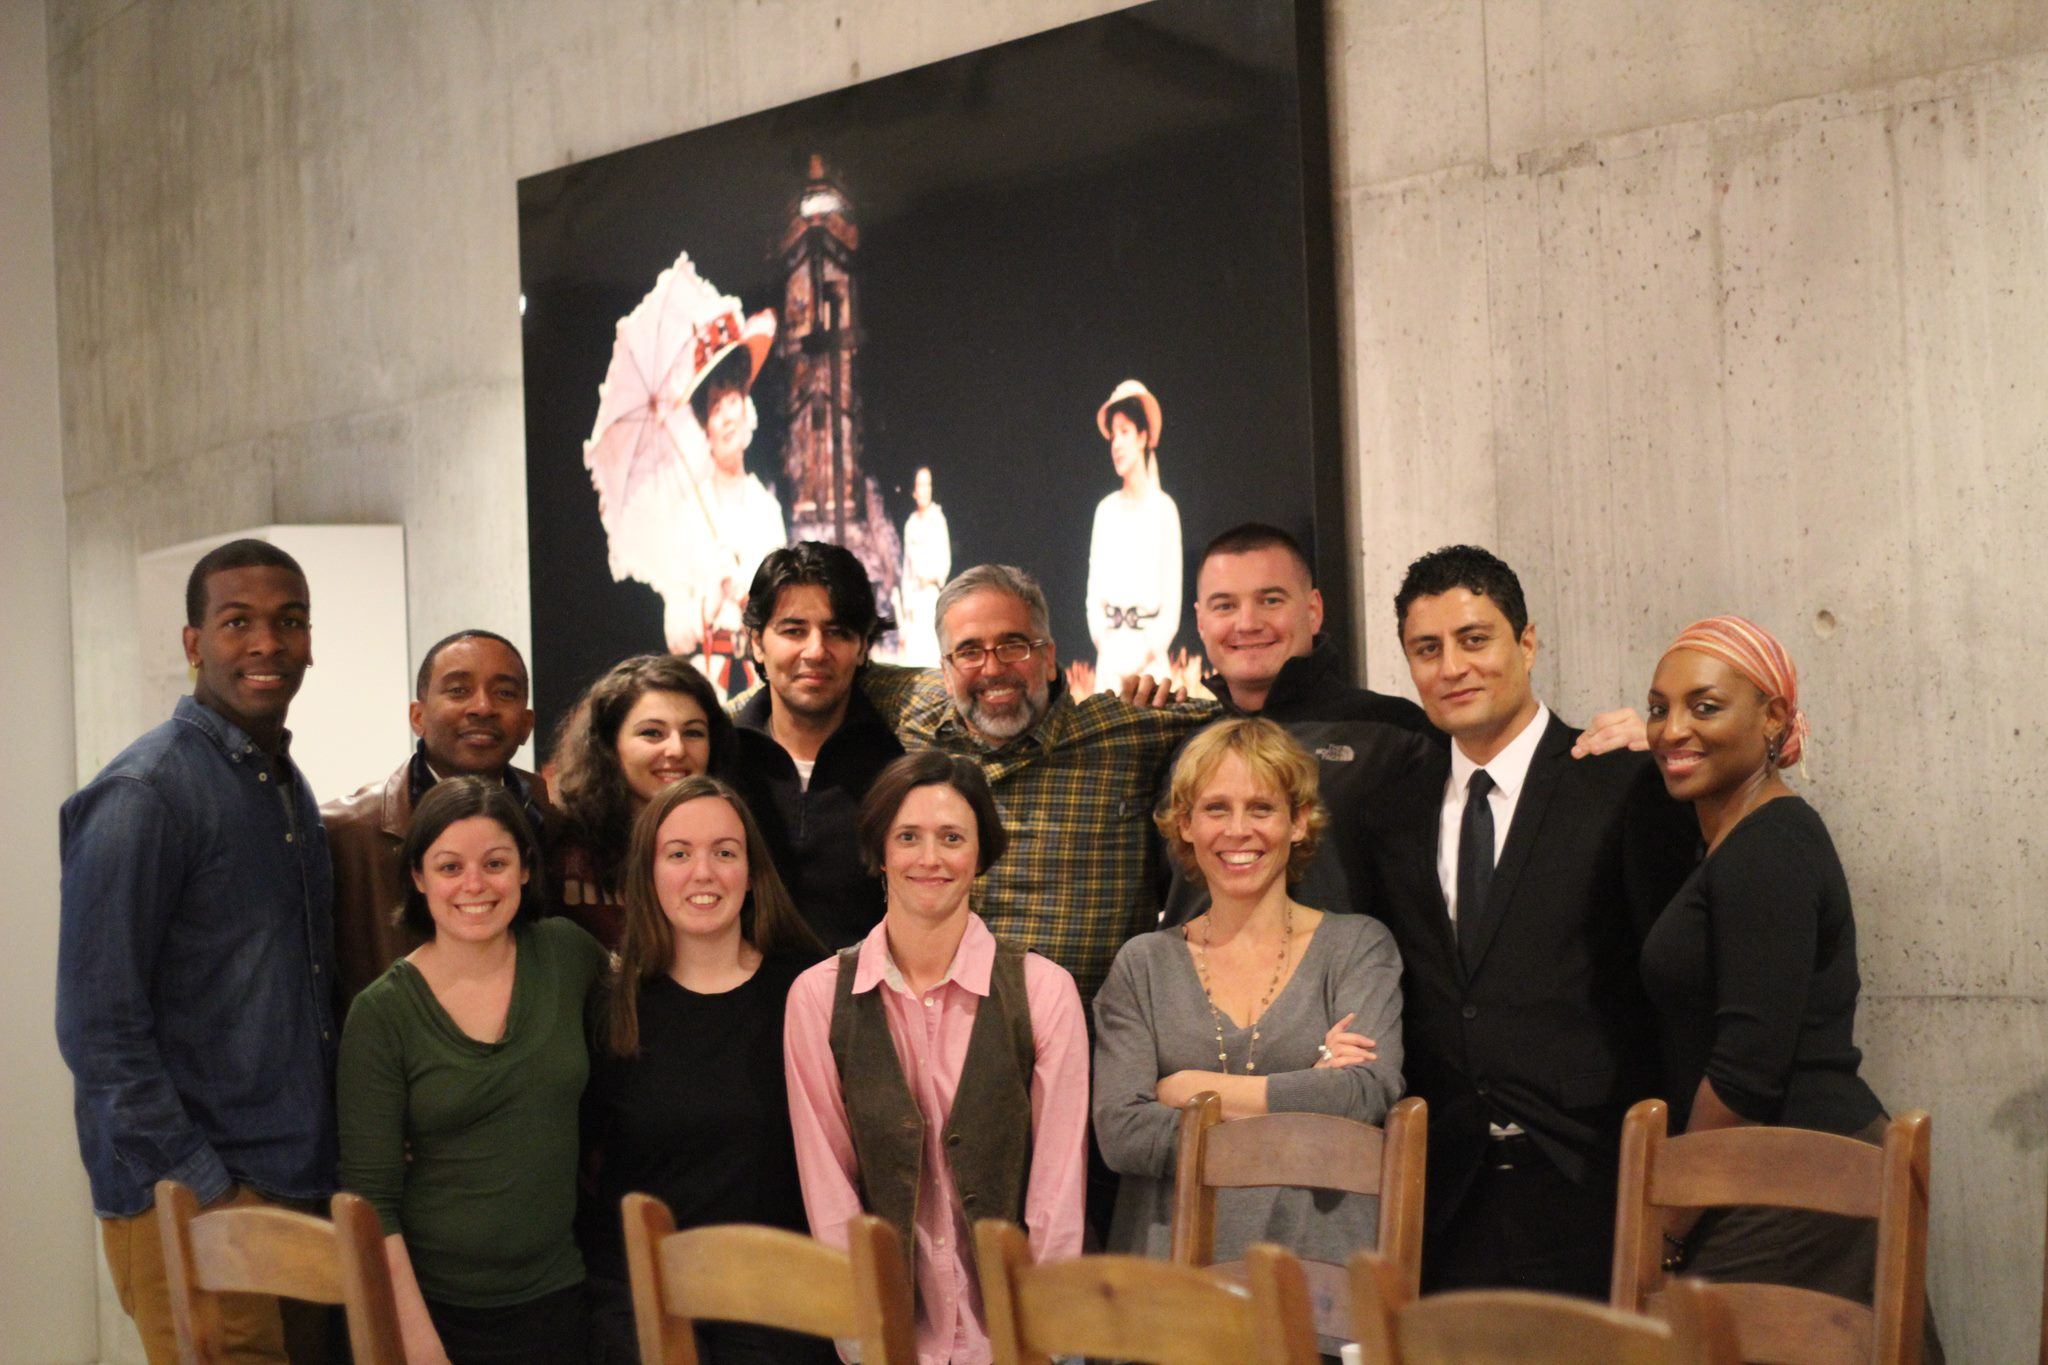 """Behind the scenes at Arena Stage, the cast and crew of """"Love in Afghanistan"""" with ex U.S. soldier Matt Zeller and Afghan interpreter Janis Shinwari."""